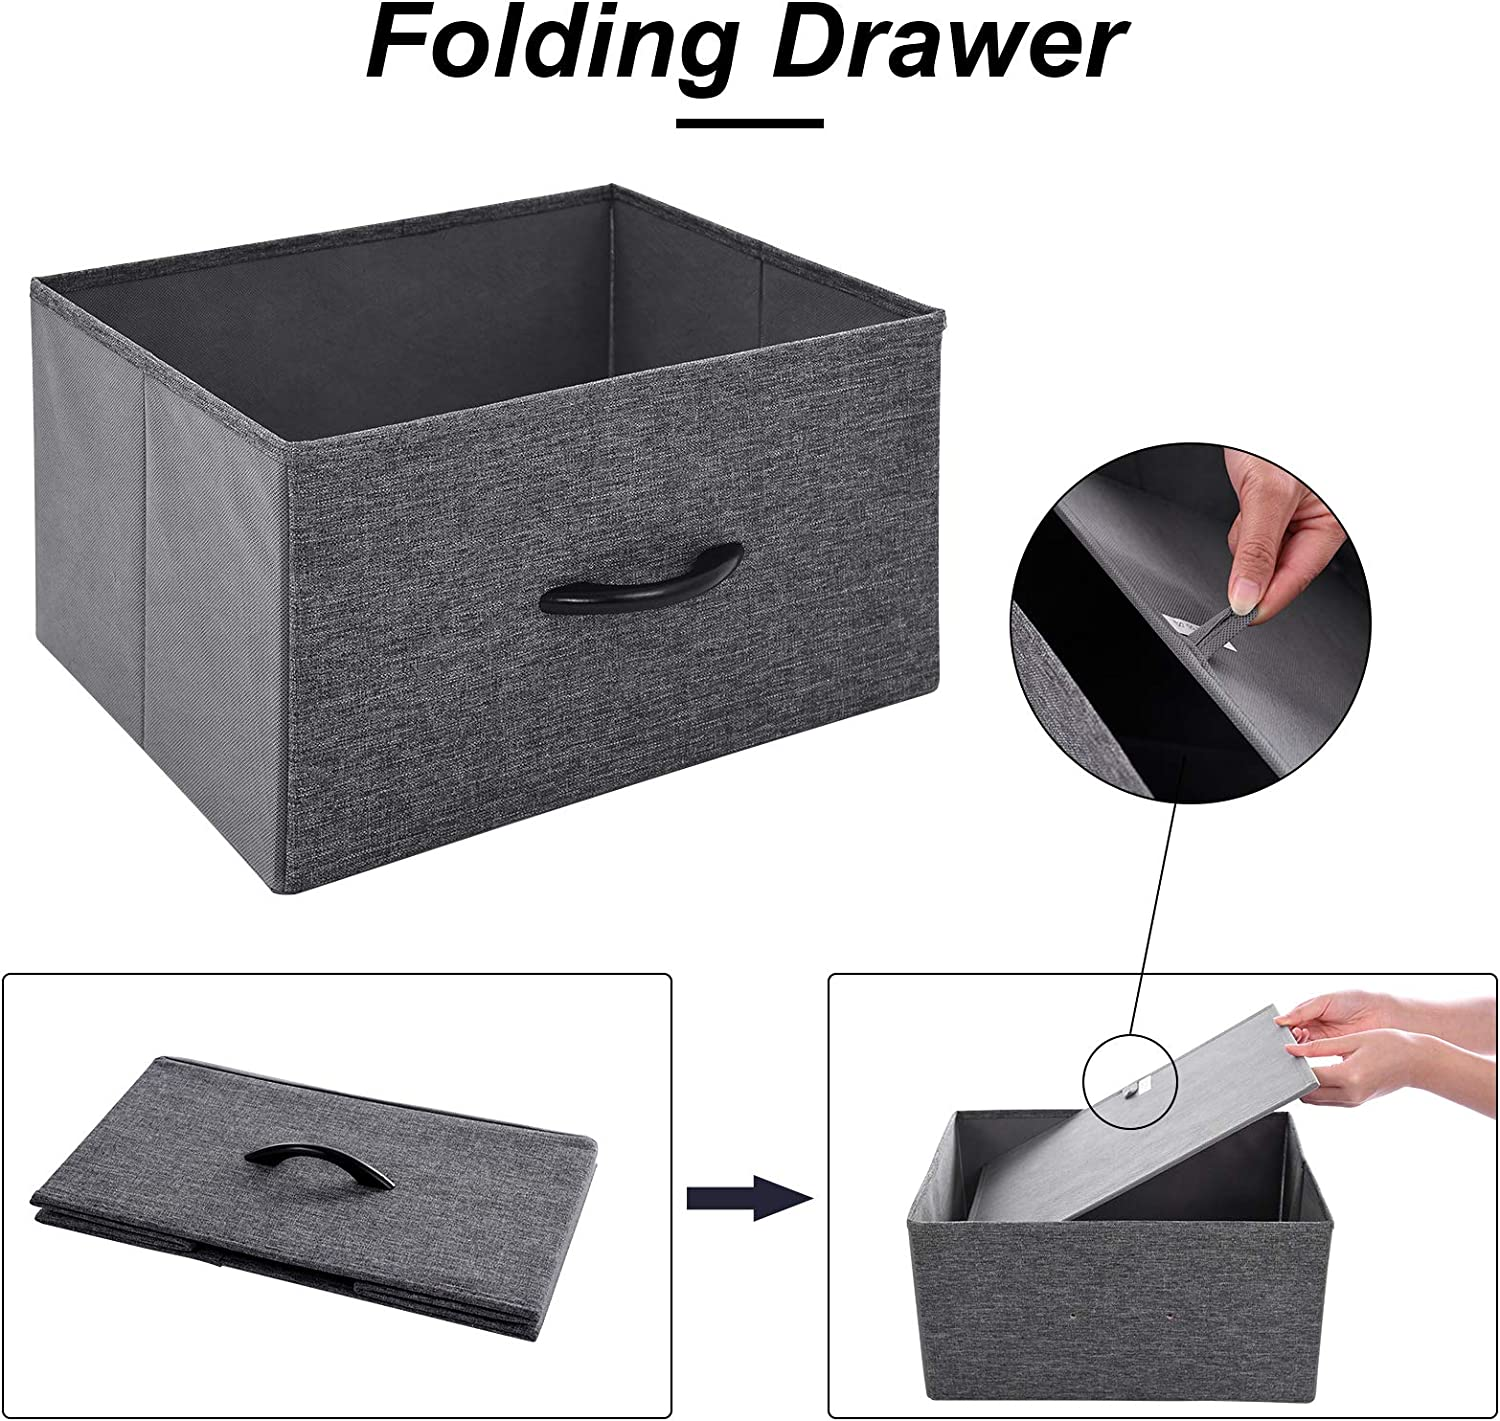 4 Drawers Fabric Organizer Unit for Bedroom Closets Laundry Room Hallway Entryway Houssem Storage Tower